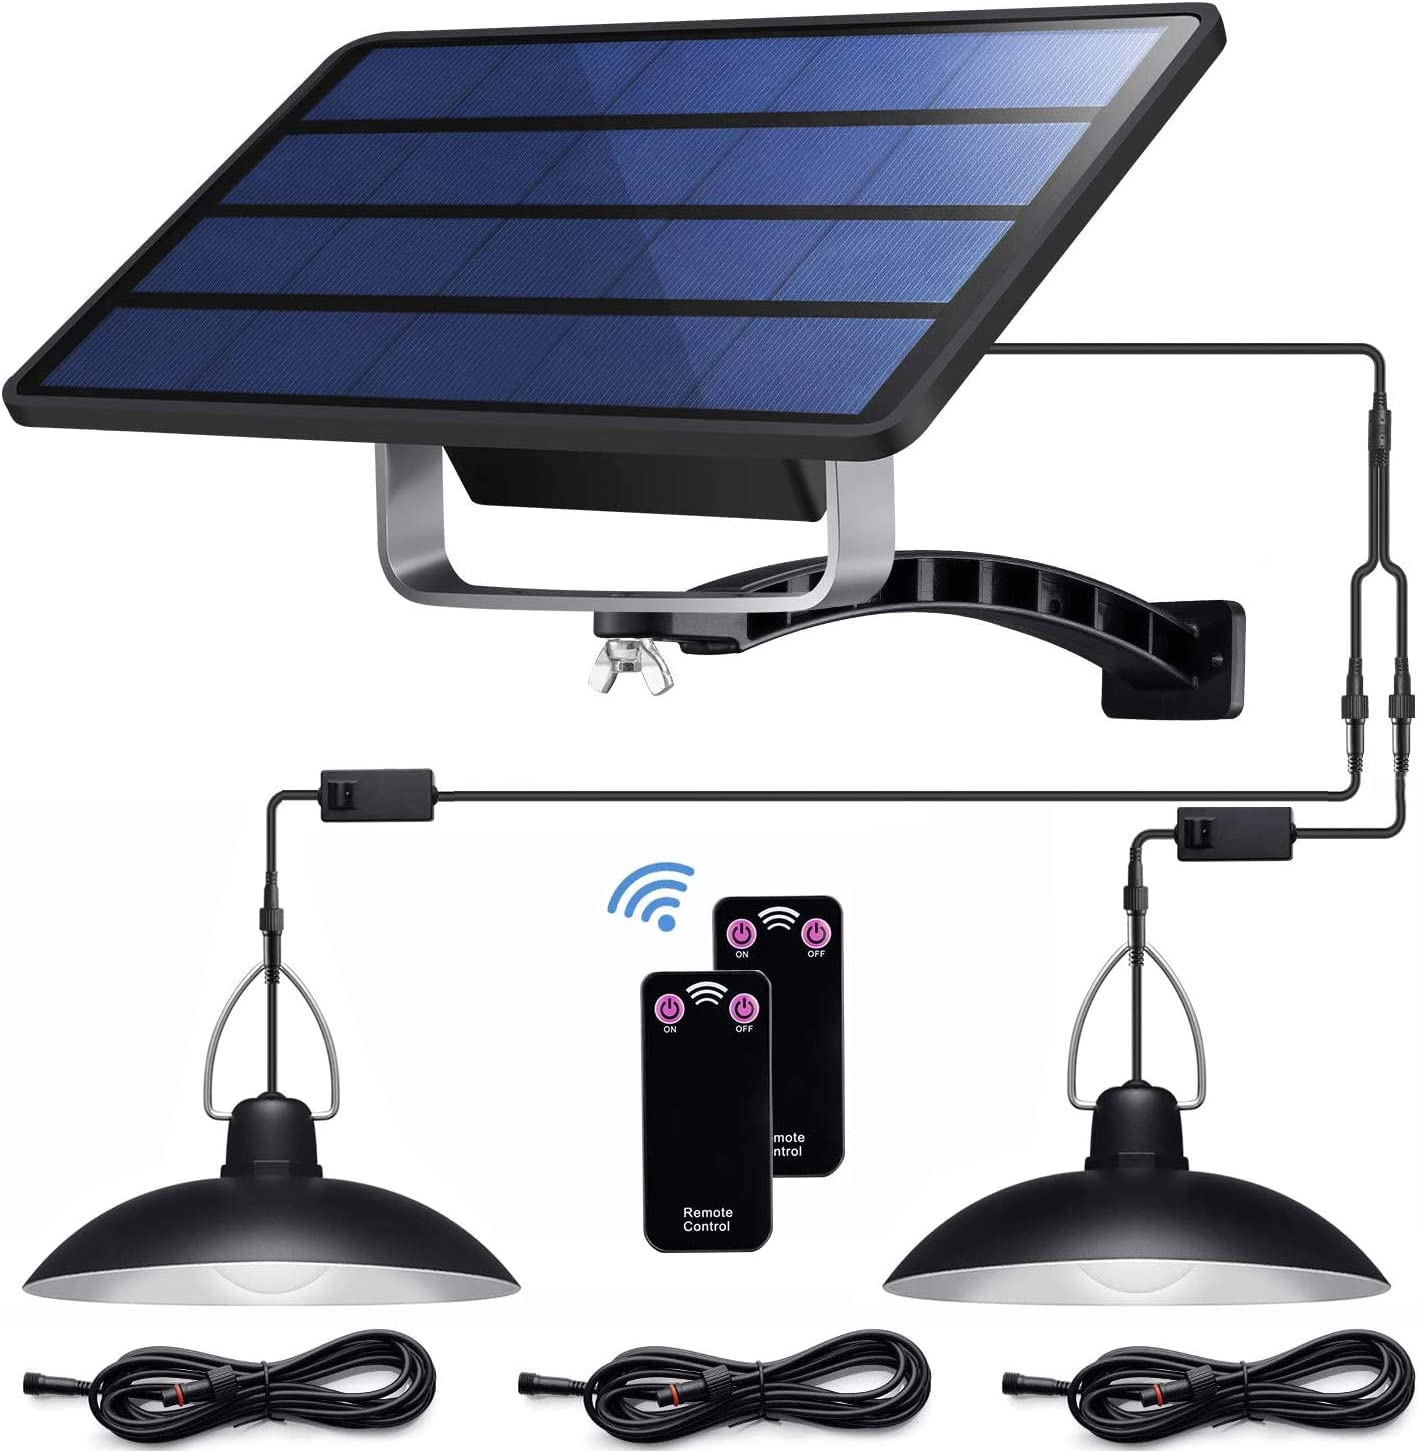 Solar Pendant Lights IP65 Waterproof Lamp with Remote ControllerDouble Bulb Lights for Outdoor Shed Barn Chicken Coop Bullpen Pig Pen 3pcs 3m/9.8ft Extension Cord